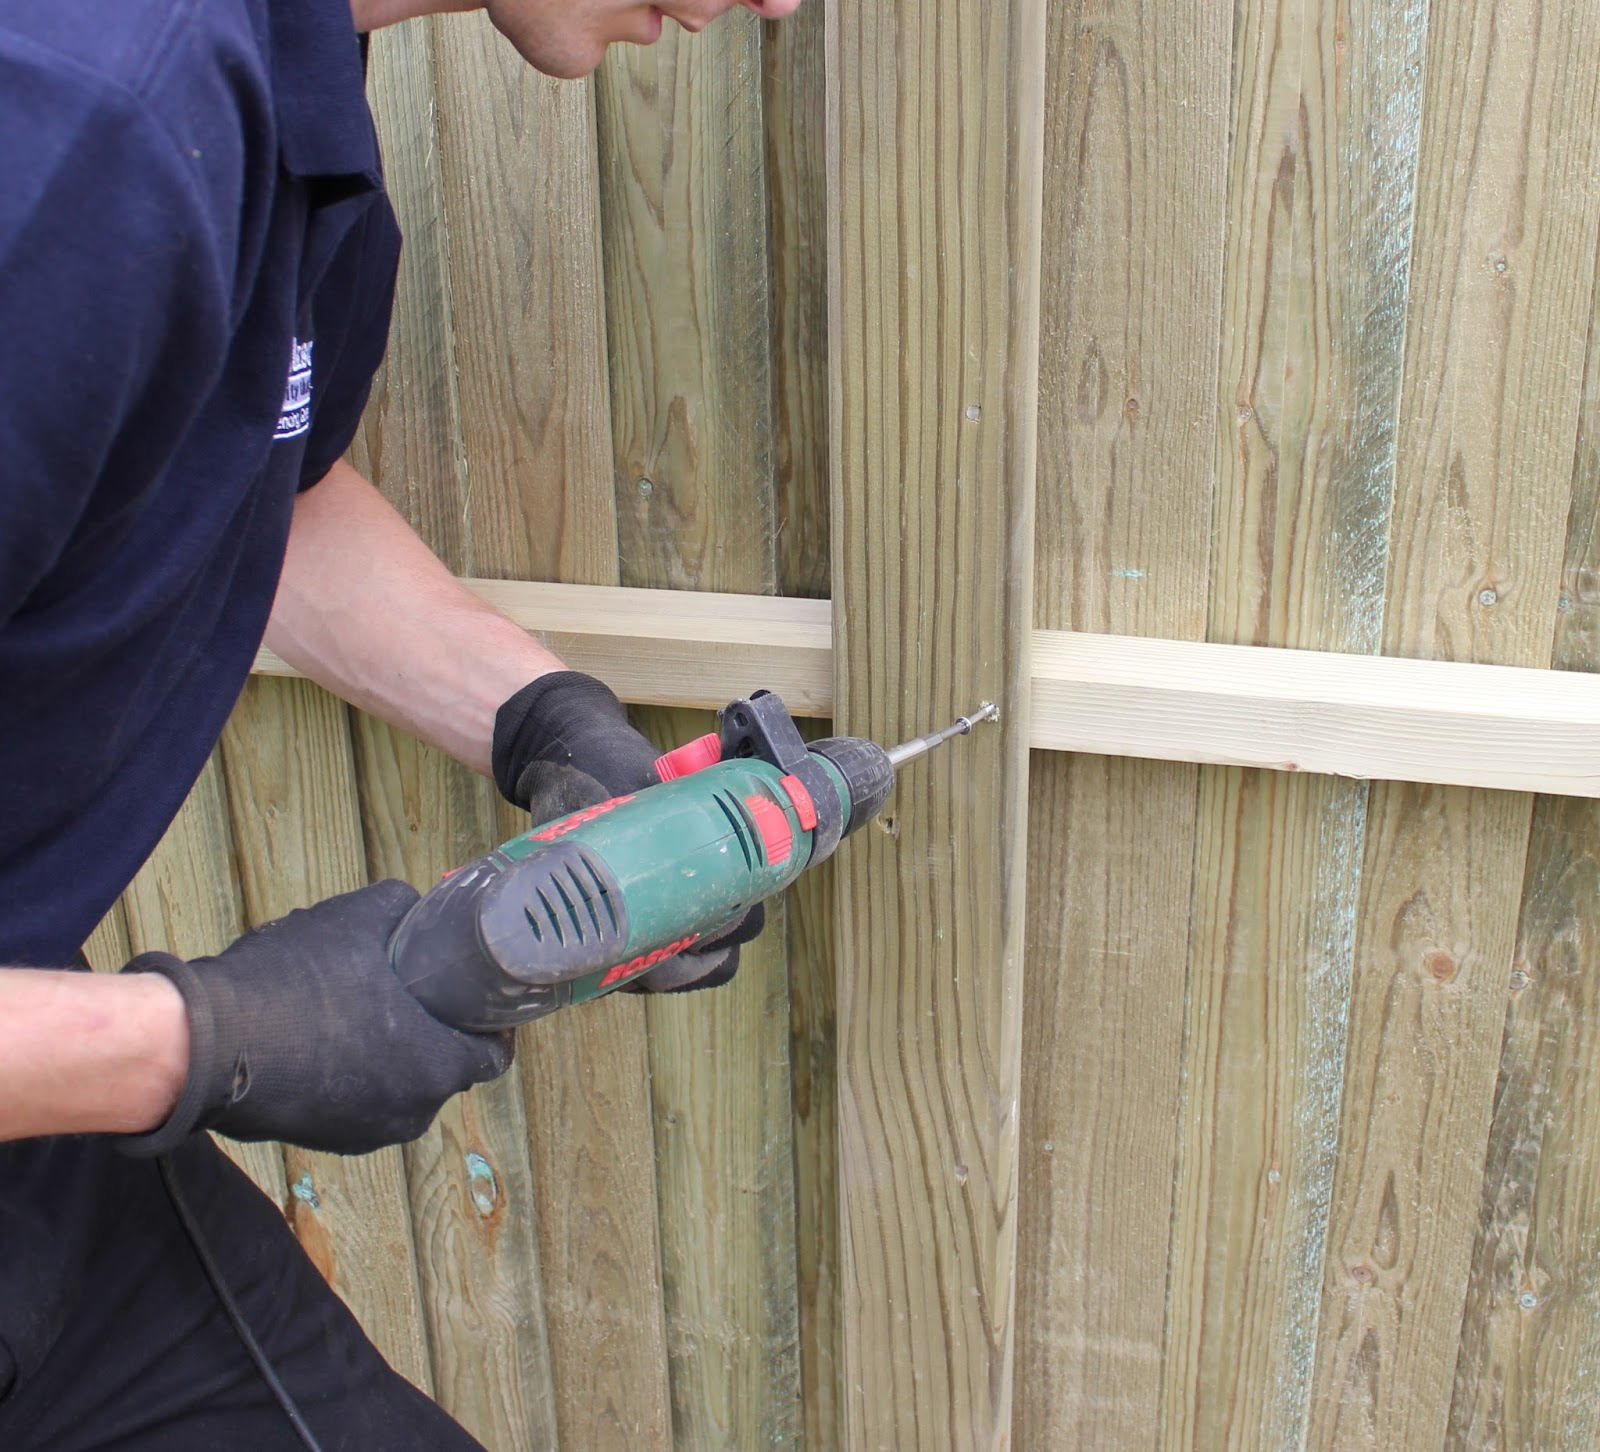 Garden fencing gates and more concrete or wooden fence posts a torx head screw through the post and into the rail on the fence panel baanklon Gallery